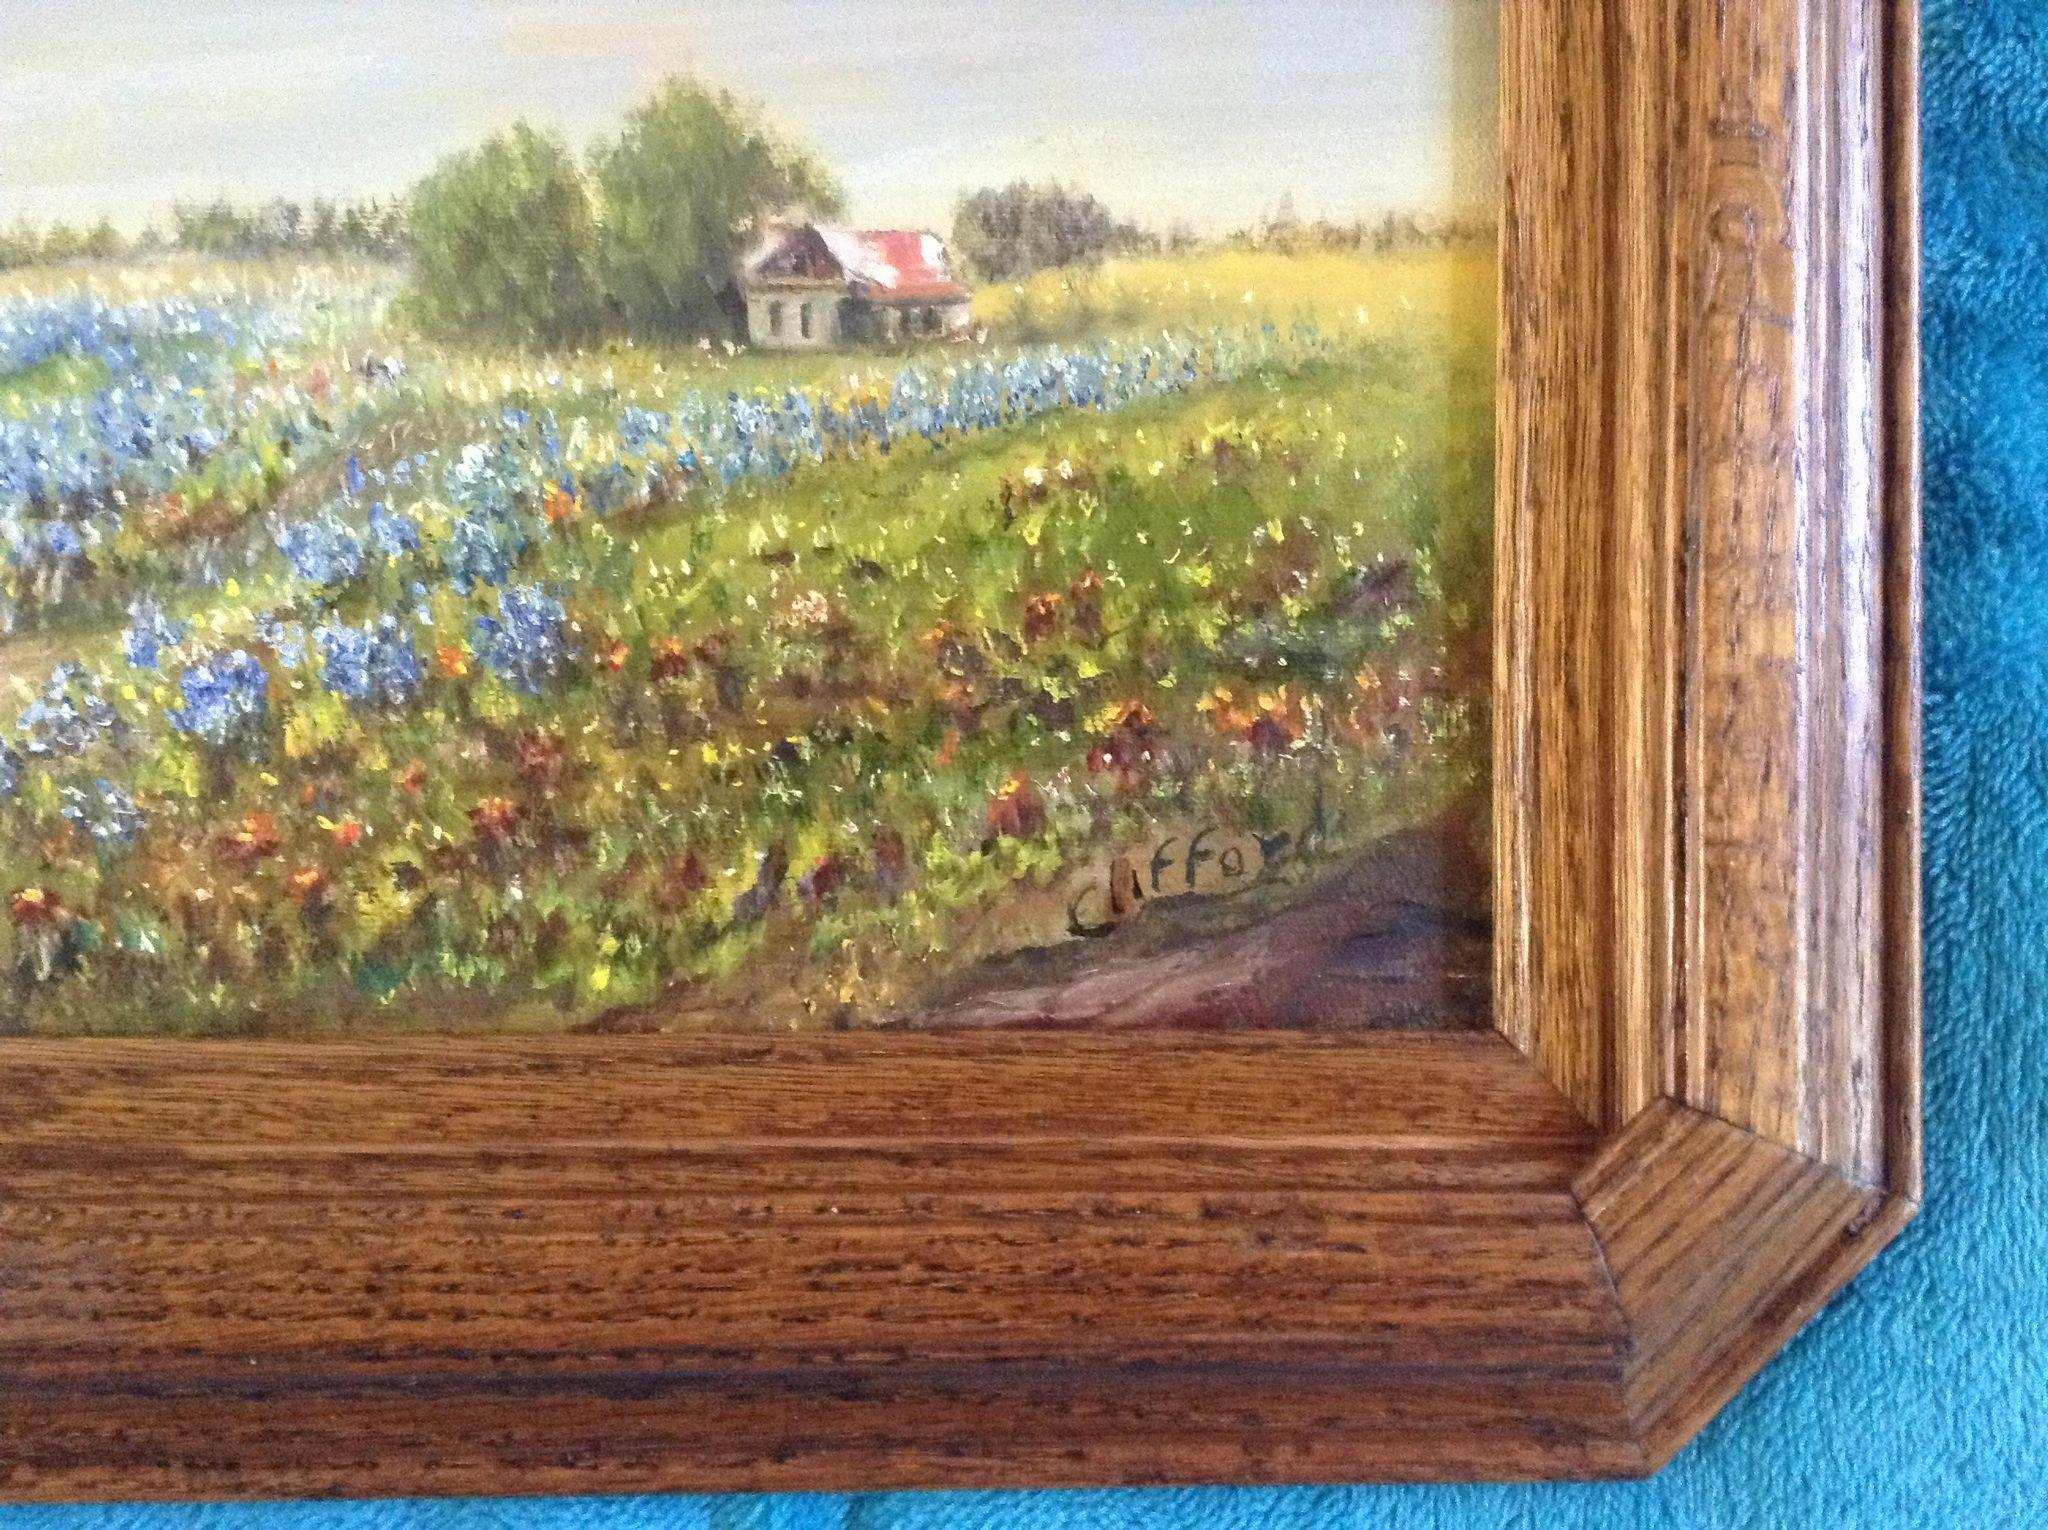 Clifford Bluebonnet Wildflowers On The Old Homestead Texas Painting From Gumgumfuninthesun On